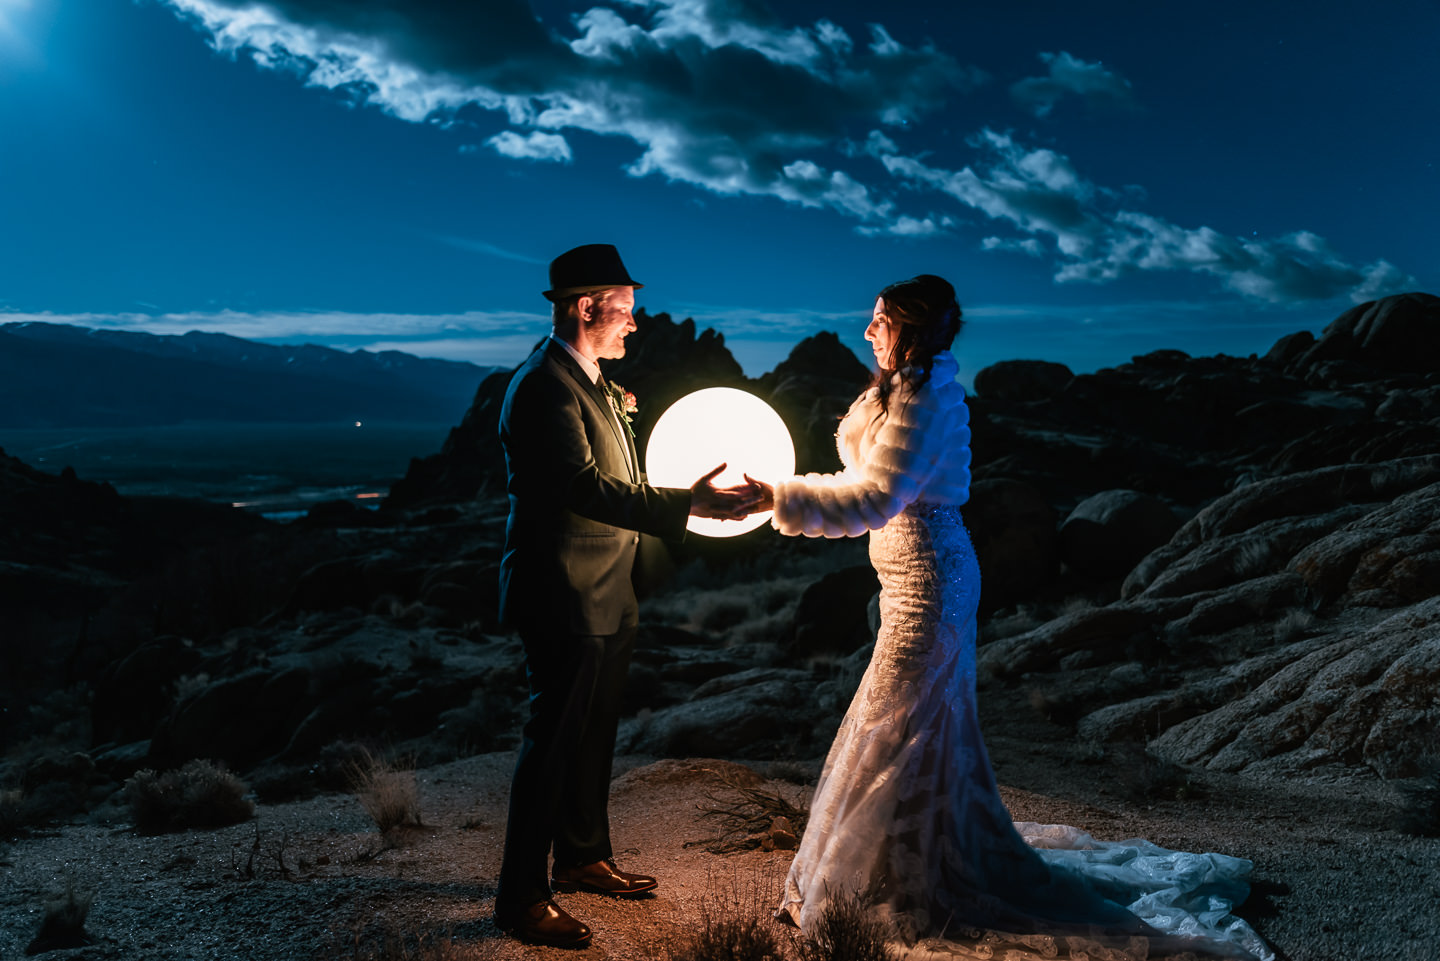 alabama-hills-california-elopement (79 of 84).jpg